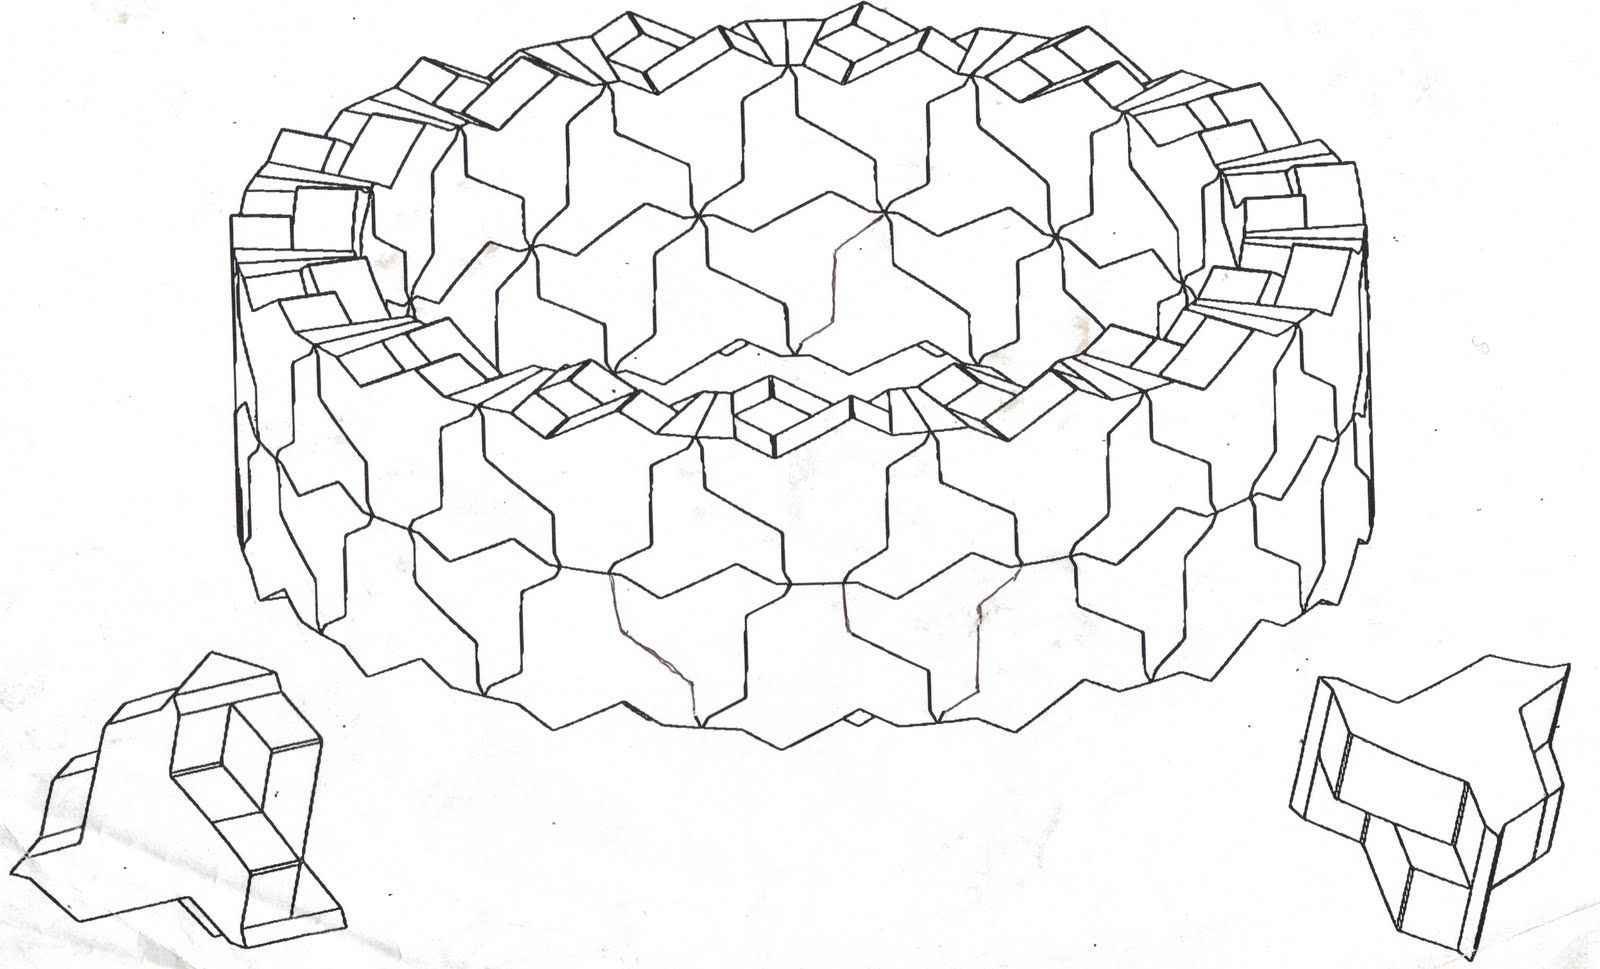 Topological interlocking structures, cylinder section